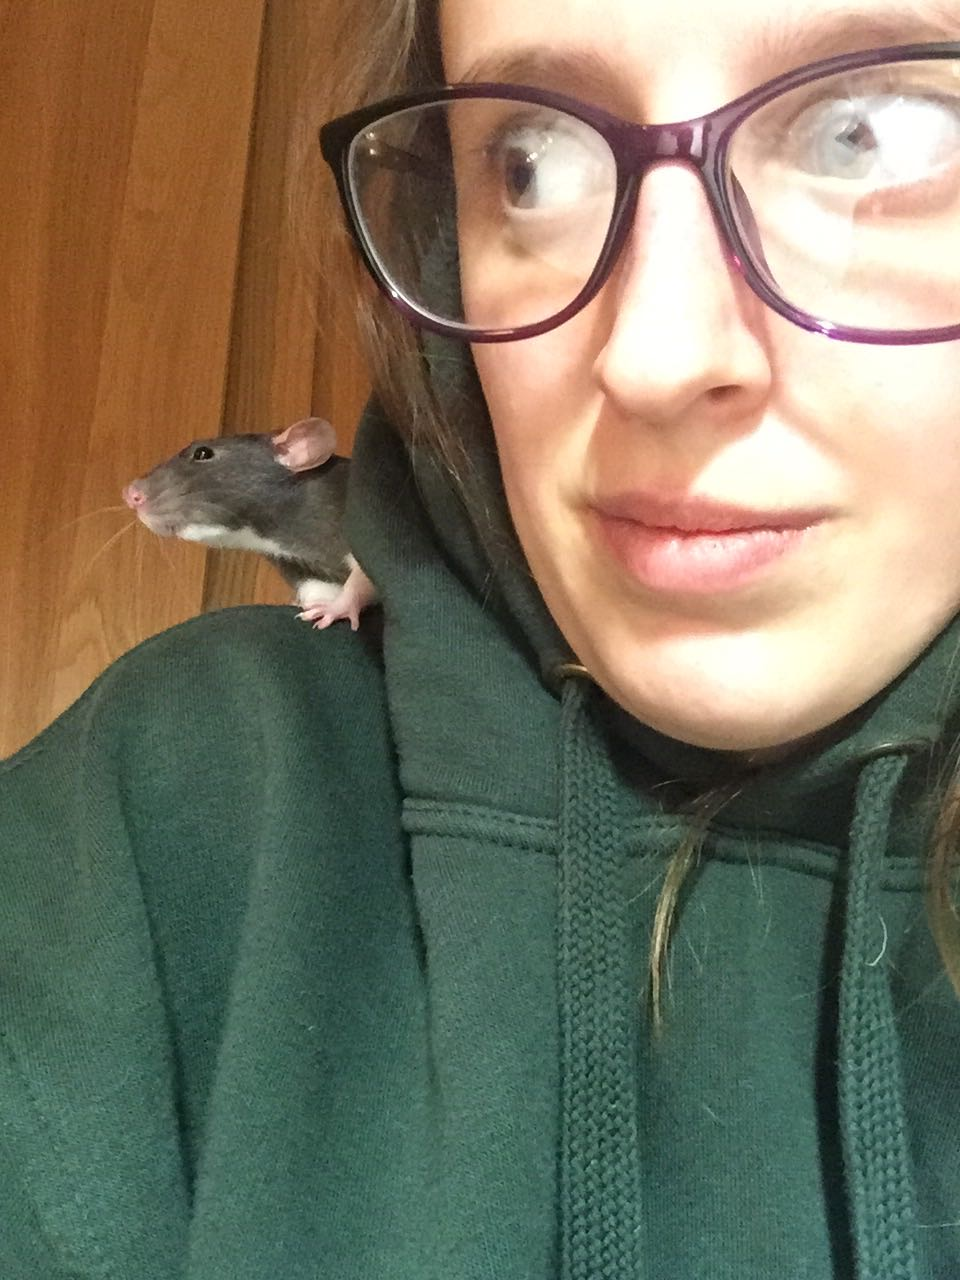 The author, with rat